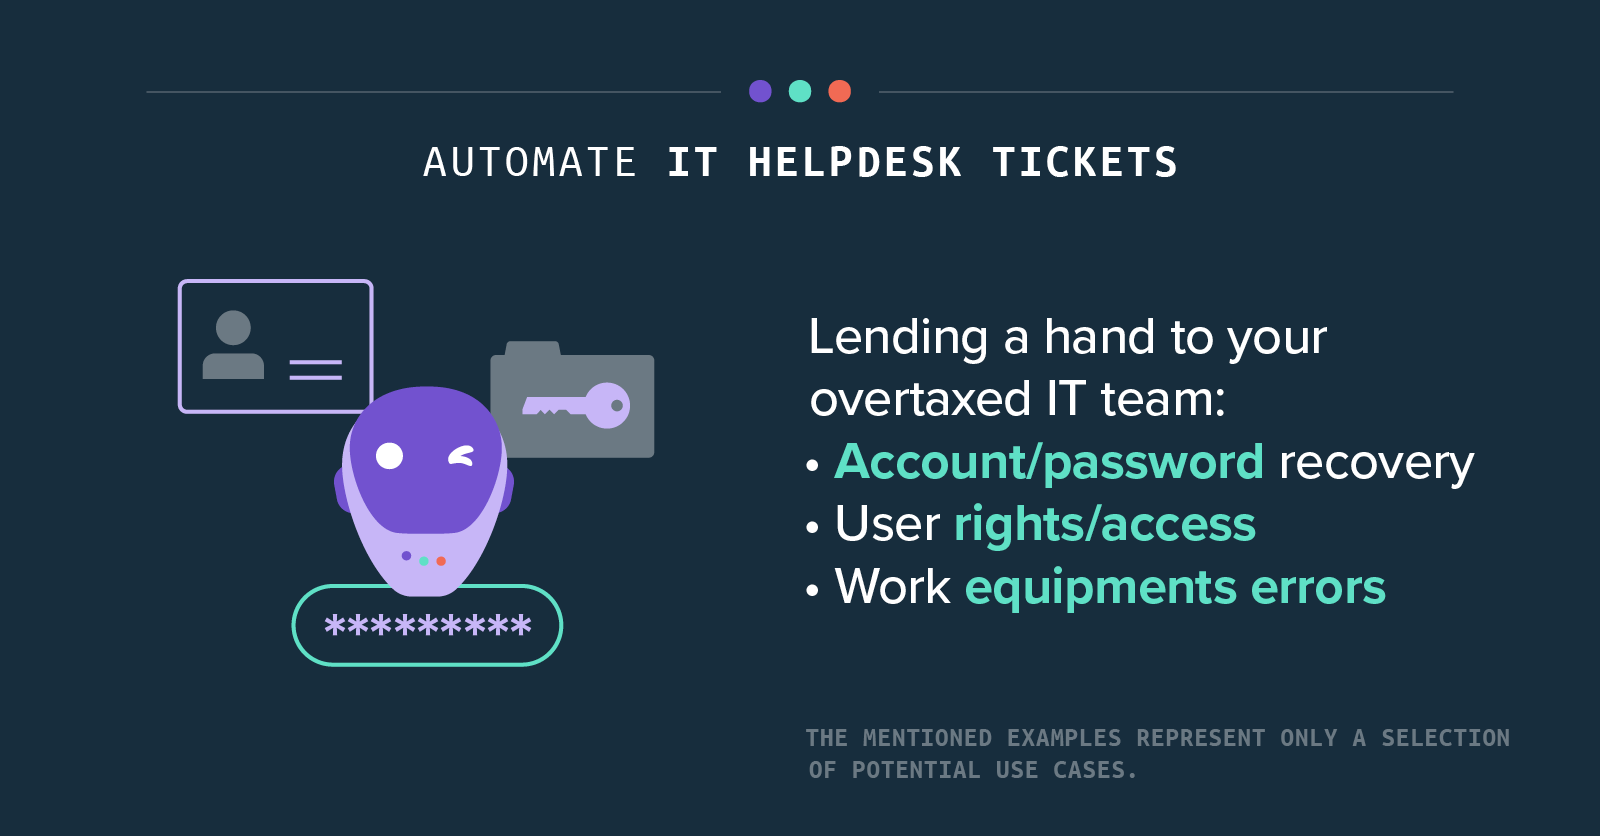 Automate IT helpdesk tickets - Lending a hand to your overtaxed IT team: • Account/password recovery • User rights/access • Work equipments errors